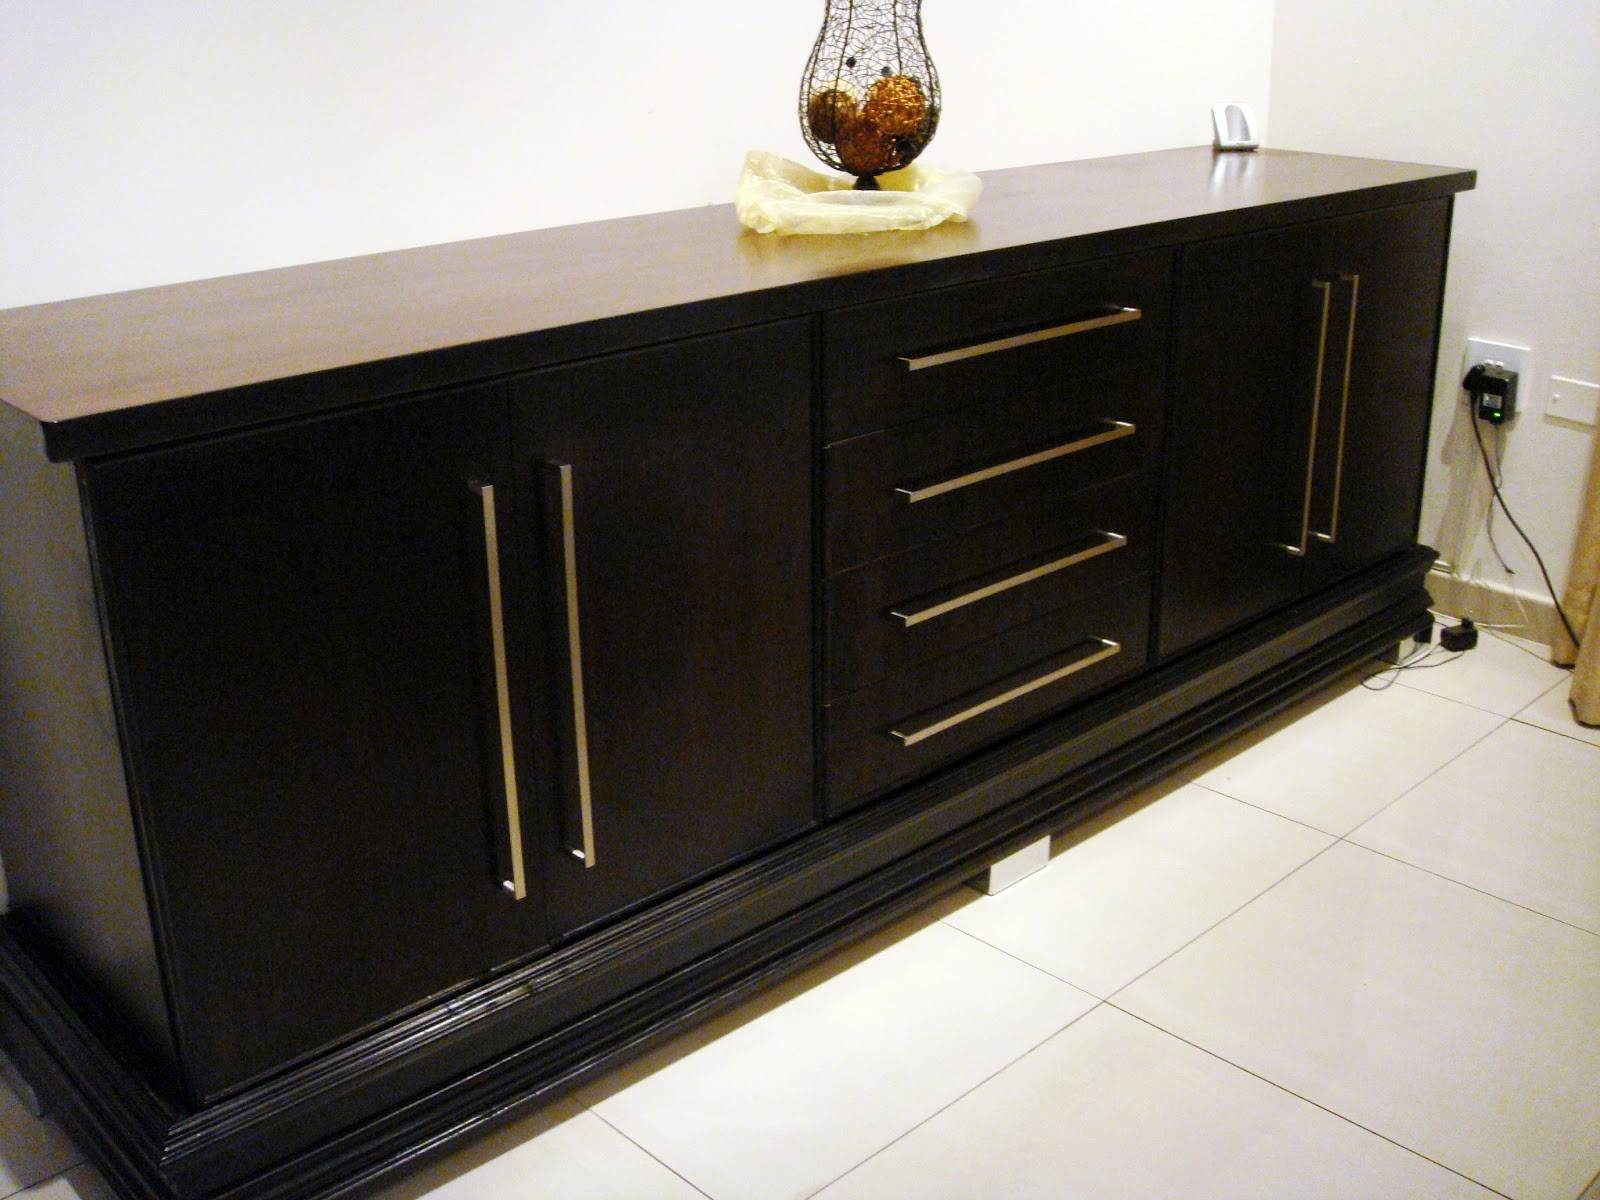 Dining Room Bar Sideboard | Latest Home Decor And Design in Black Dining Room Sideboards (Image 3 of 15)